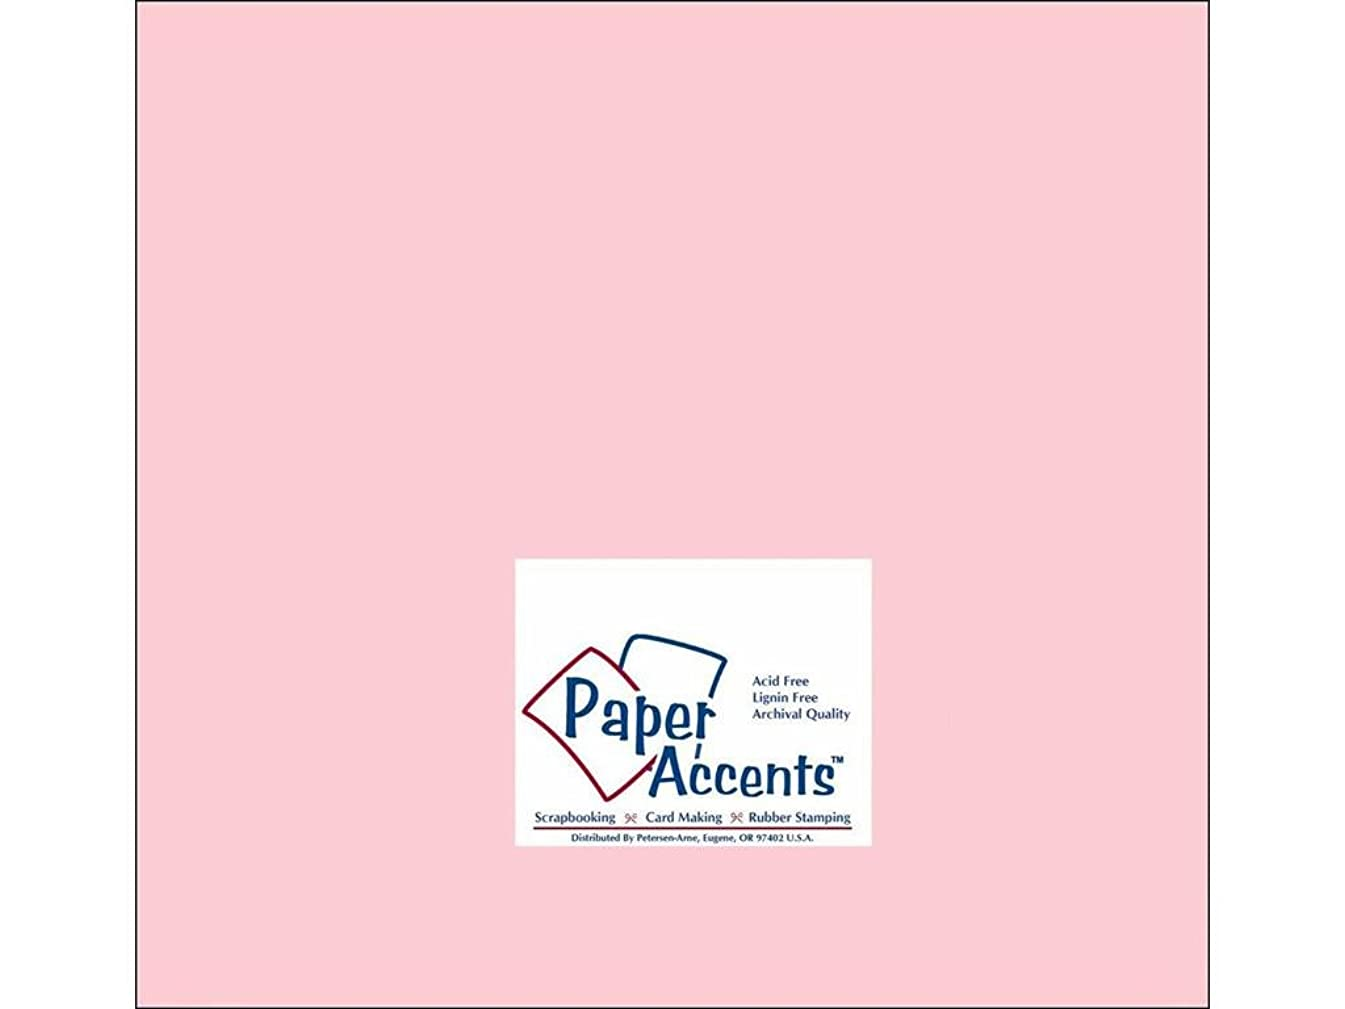 Accent Design Paper Accents Cdstk Smooth 12x12 60# Baby Pink